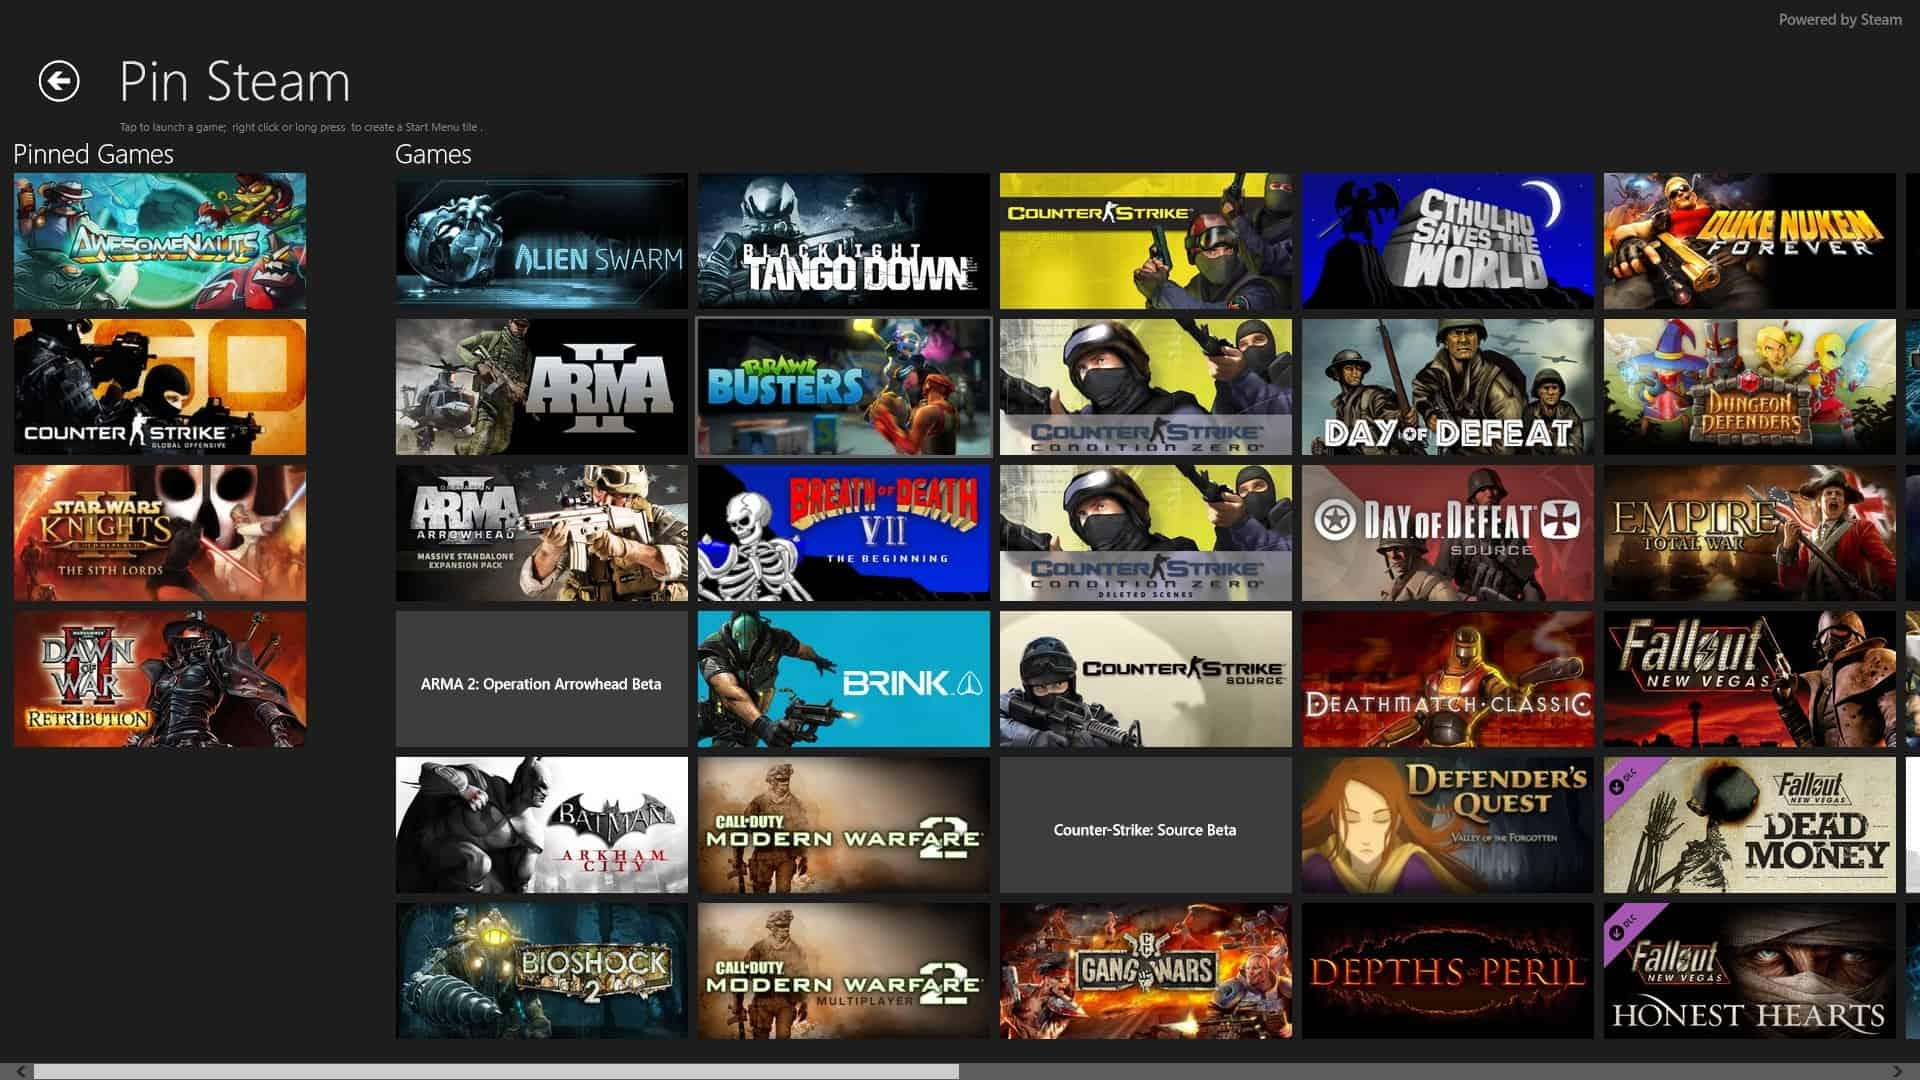 Pin Steam Adds Your Steam Games To Windows 8's Start Screen